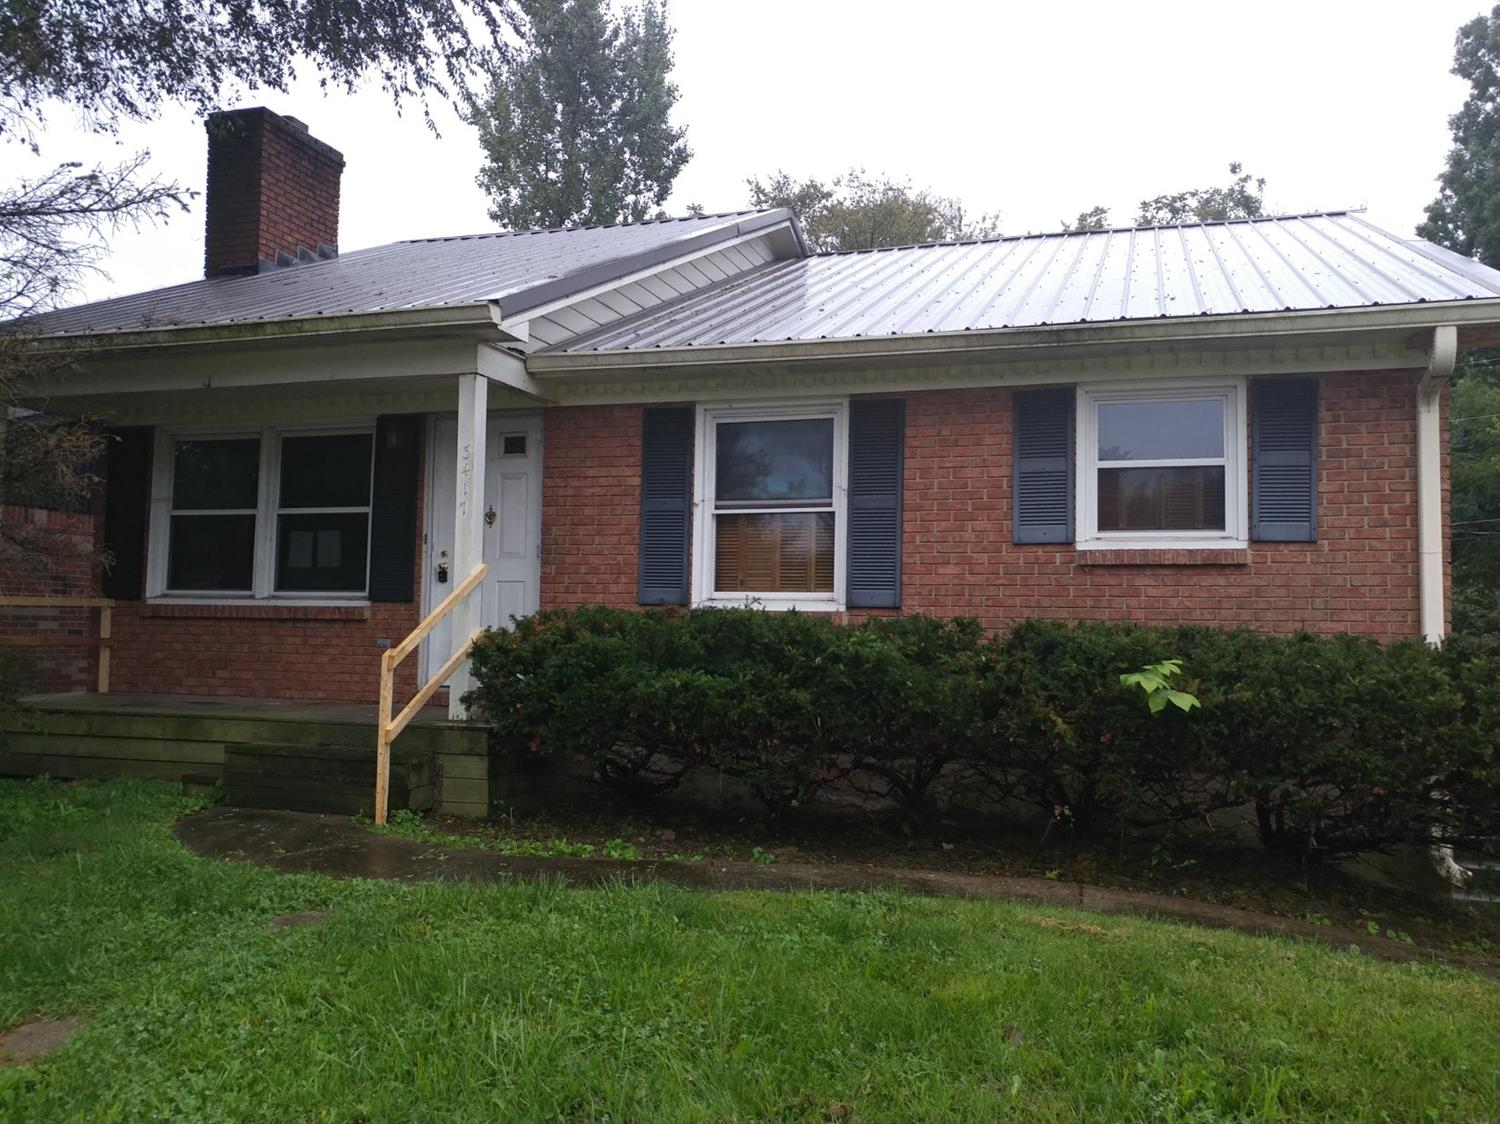 Brick%20ranch%20home%20on%20basement.%20Vaulted%20ceiling%20in%20living%20room%20and%20fireplace.%20Basement%20has%20another%20fireplace,%20family%20room,%20bar%20area%20and%20full%20bath.%20Garage%20in%20basement.%20Property%20is%20sold%20as-is%20only.%20$1,000%20minimum%20earnest%20money%20deposit%20required.%20Buyer/Buyer's%20agent%20should%20verify%20ALL%20information%20contained%20within%20this%20listing.%20Schools%20should%20be%20verified%20at%20time%20of%20offer.%20Equal%20Housing%20opportunity.%20%20This%20property%20has%20an%20uninsured%20escrow.